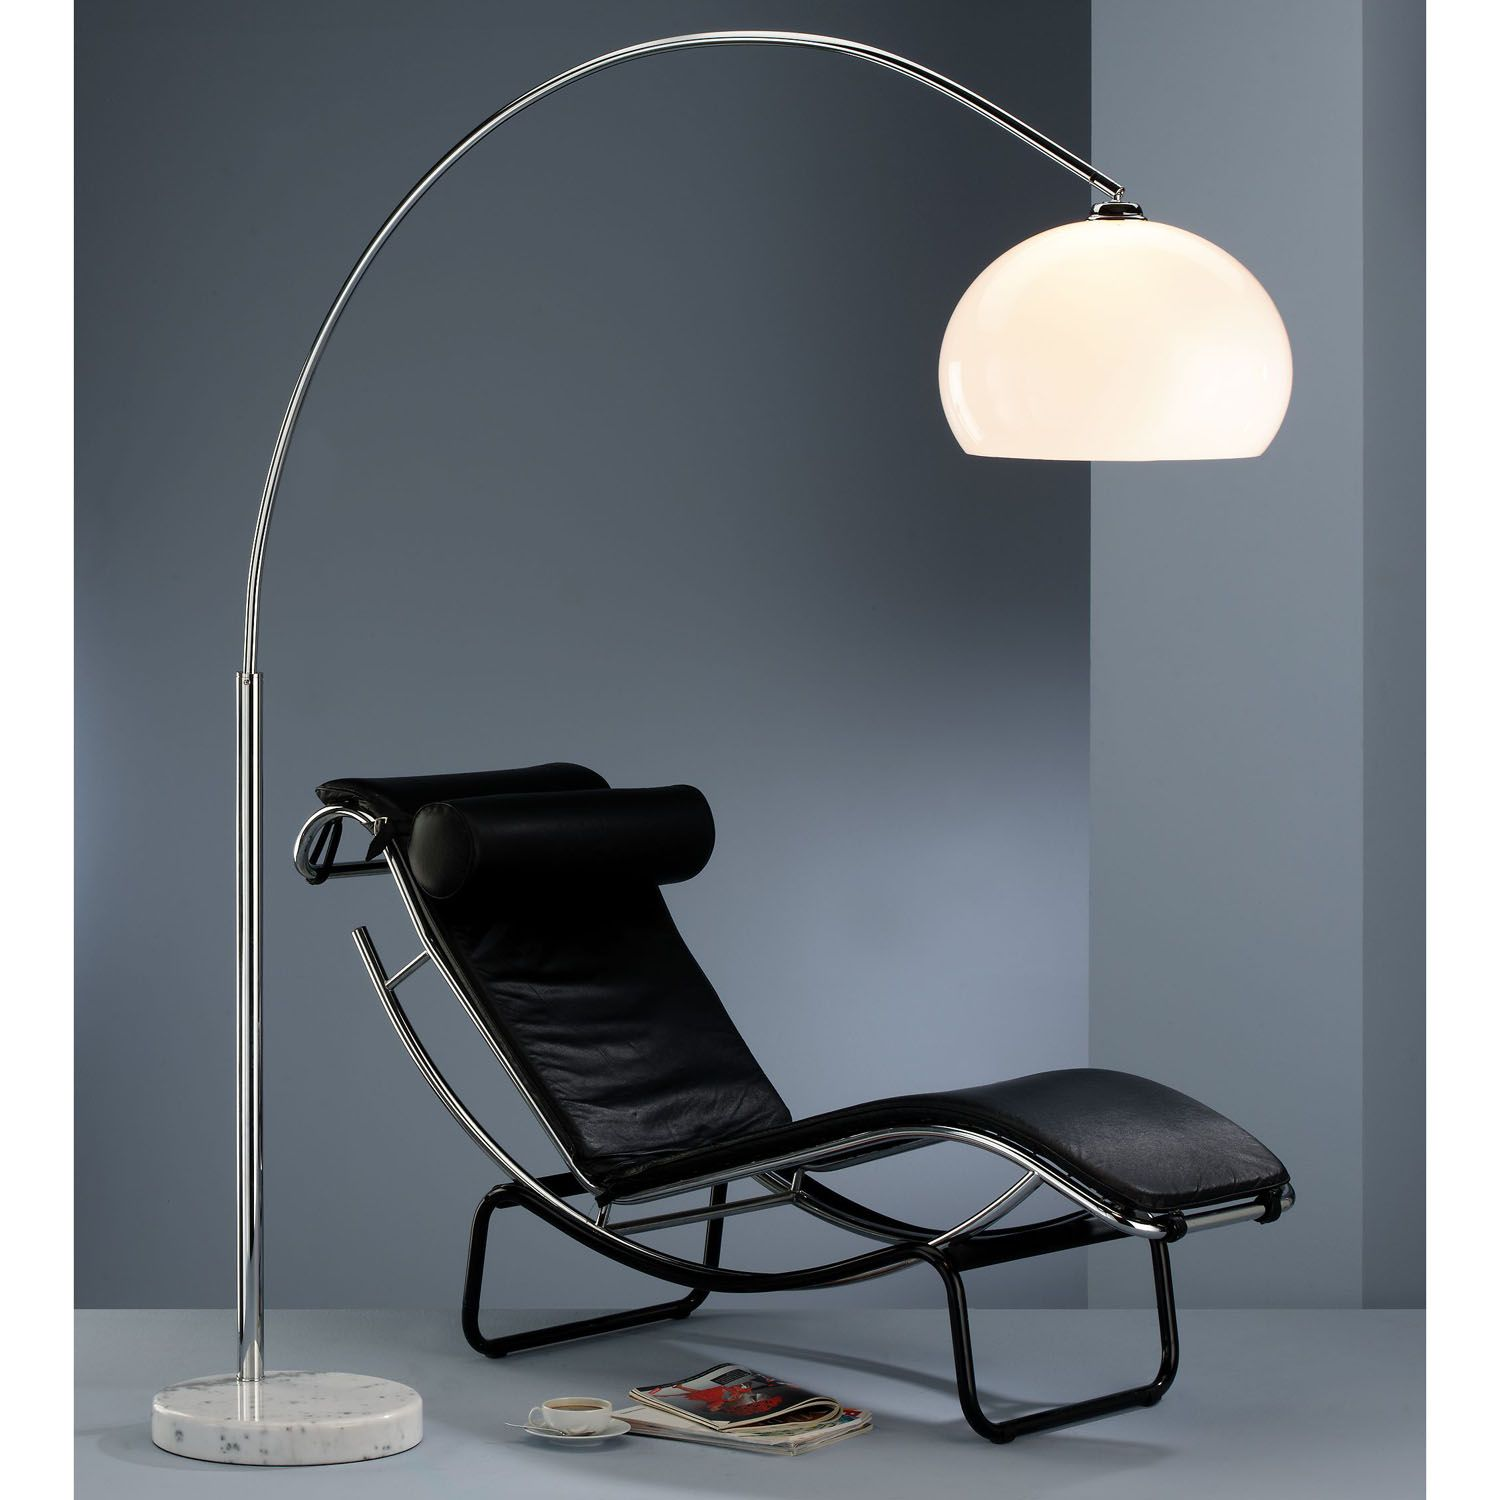 Awesome Arc Lamp With White Glass Lampshde And Black Leather